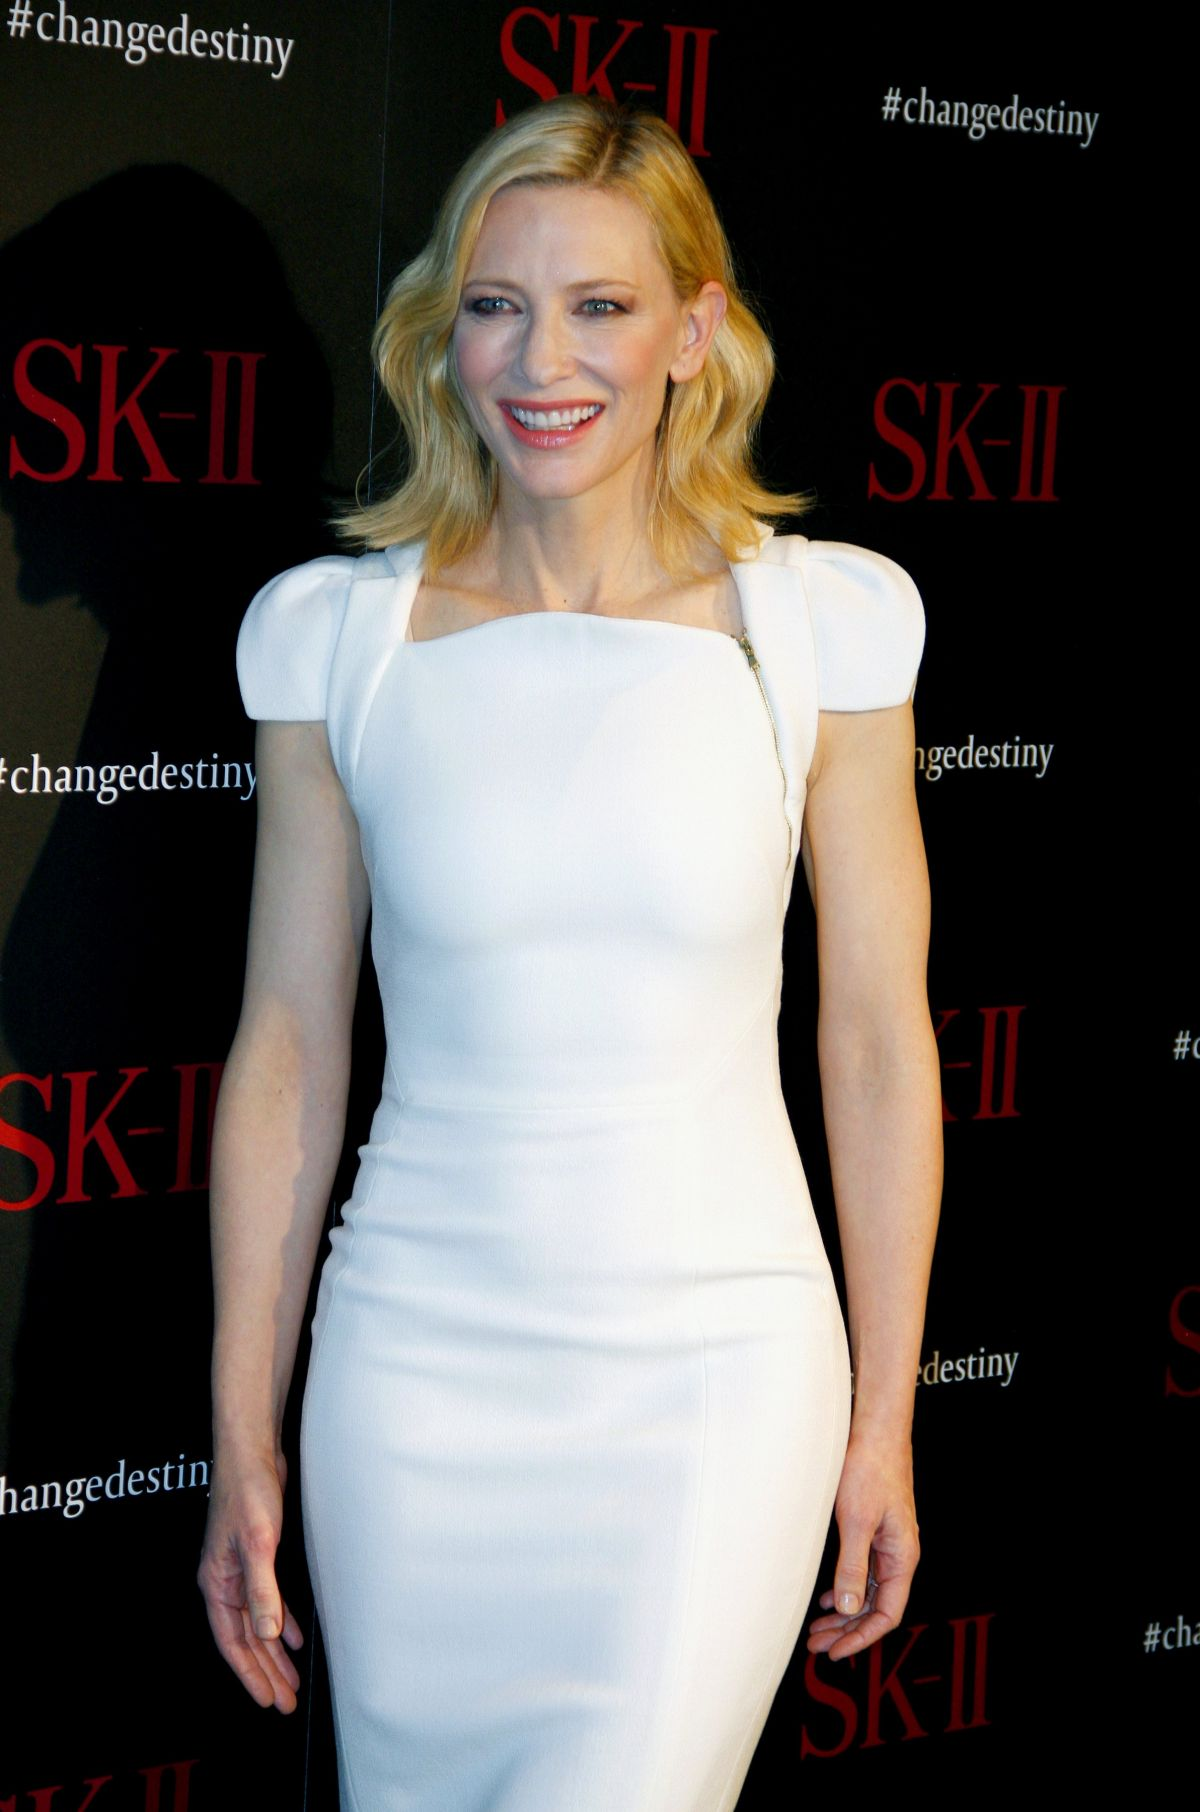 CATE BLANCHETT at Sk-ii Changedestiny Forum in West Hollywood 02/26/2016 – HawtCelebs